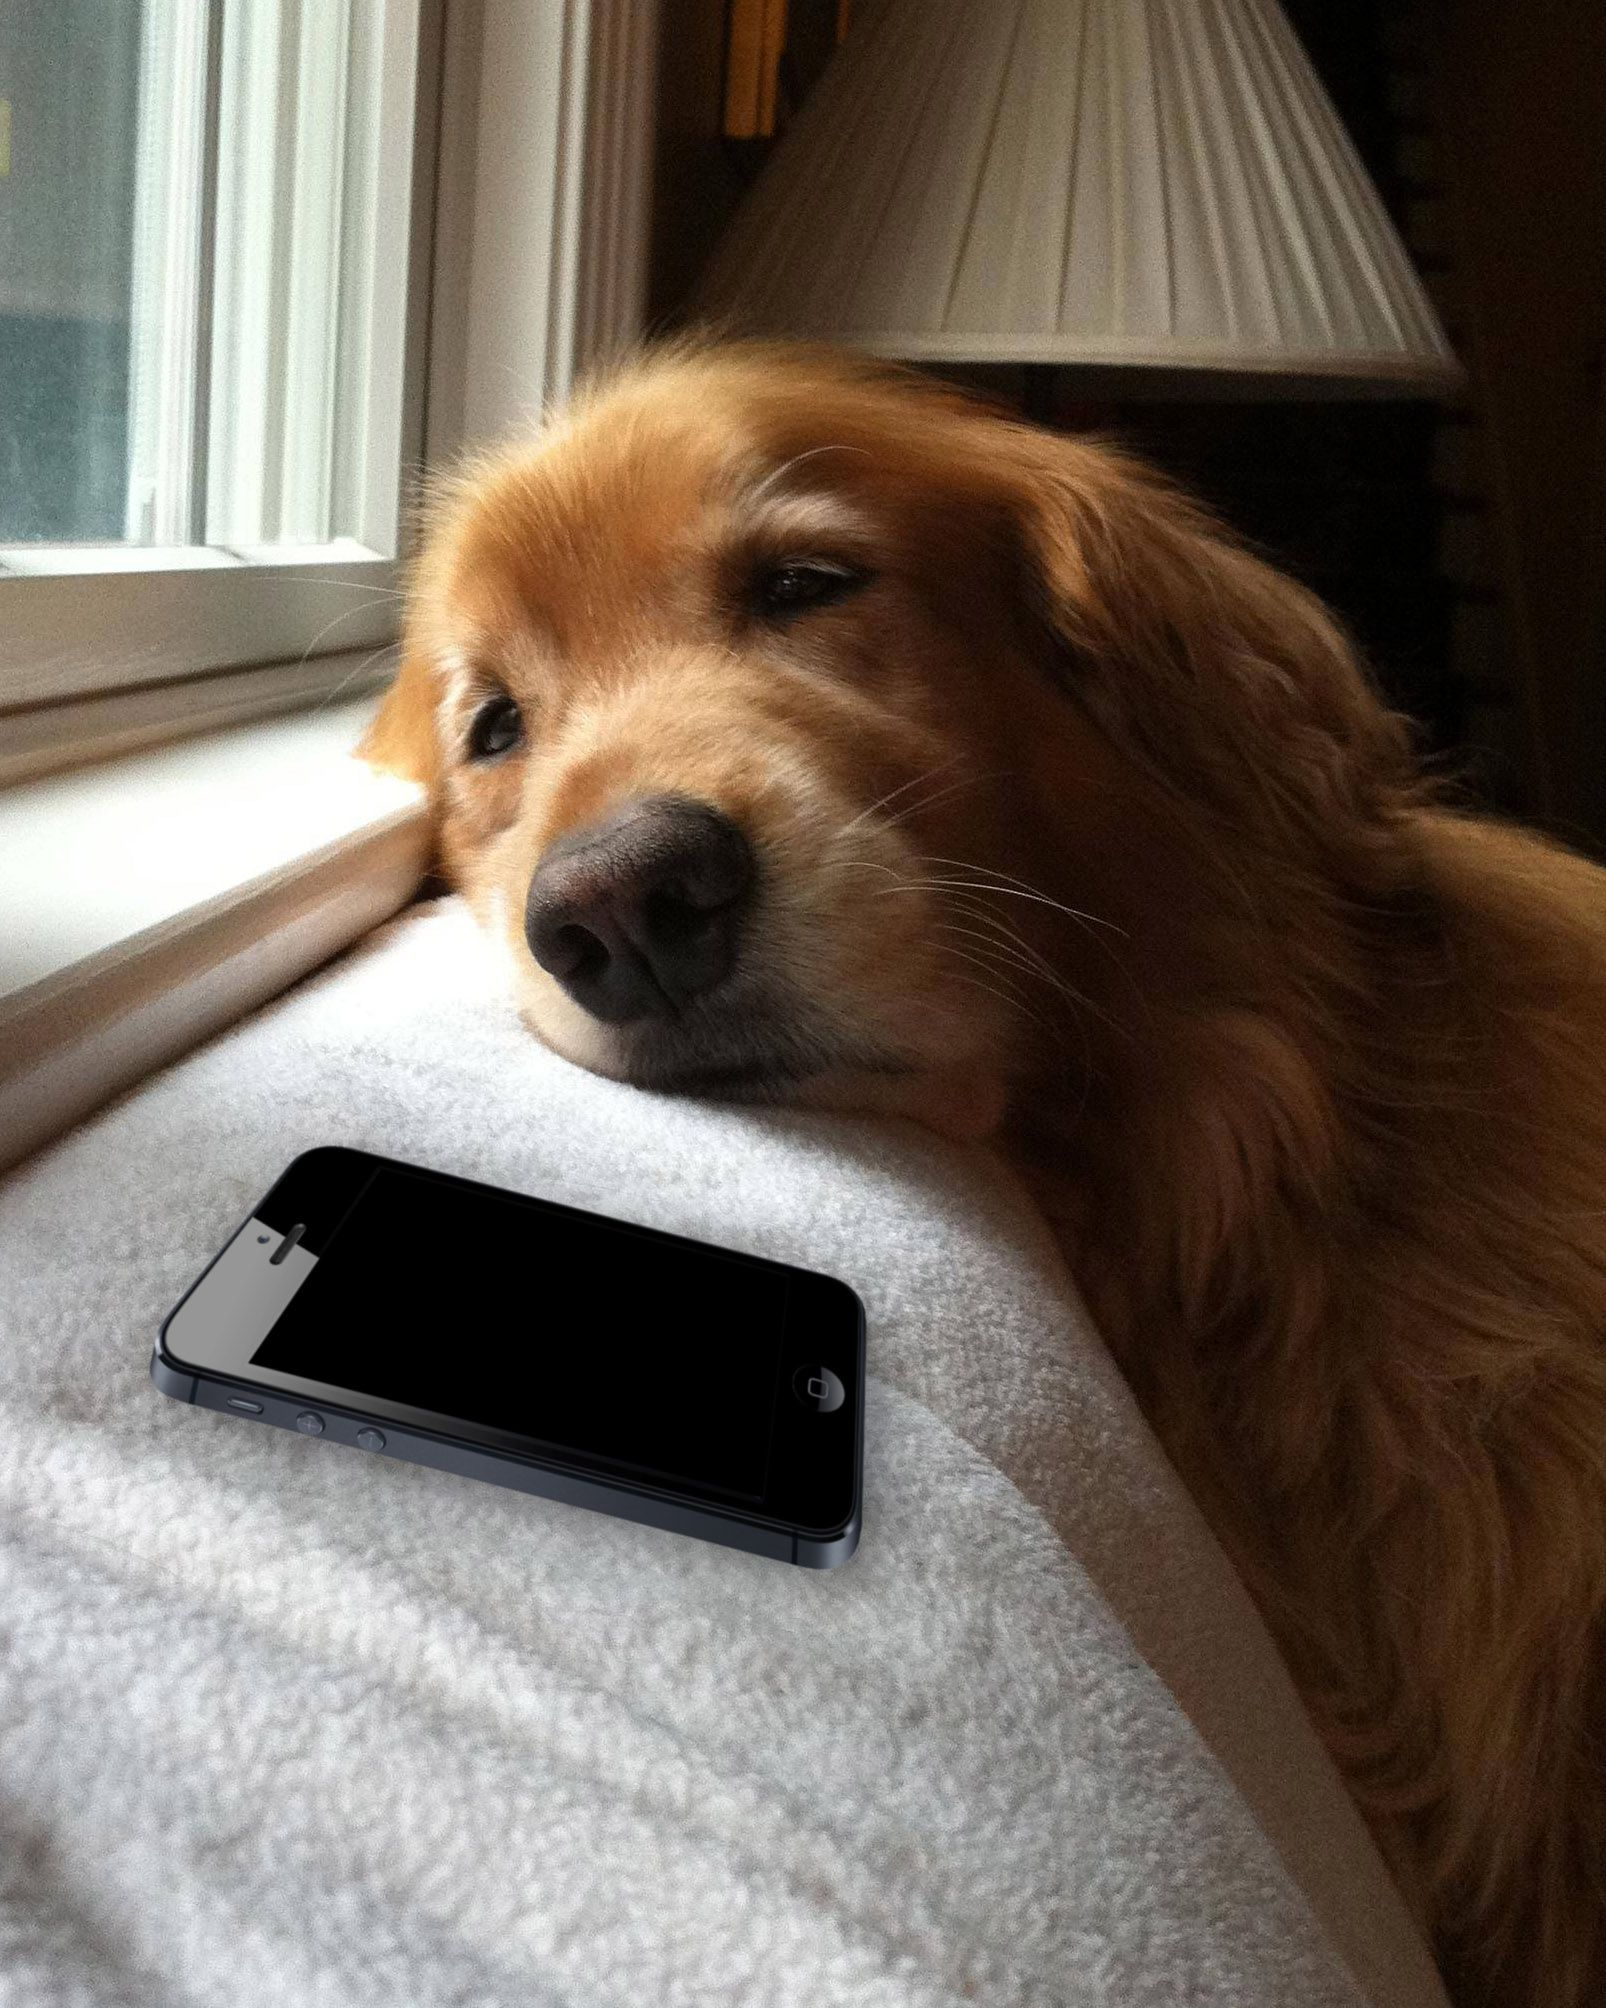 Animal Crush Me When Waiting For A Reply From My Crush Lmfao Cute Animals